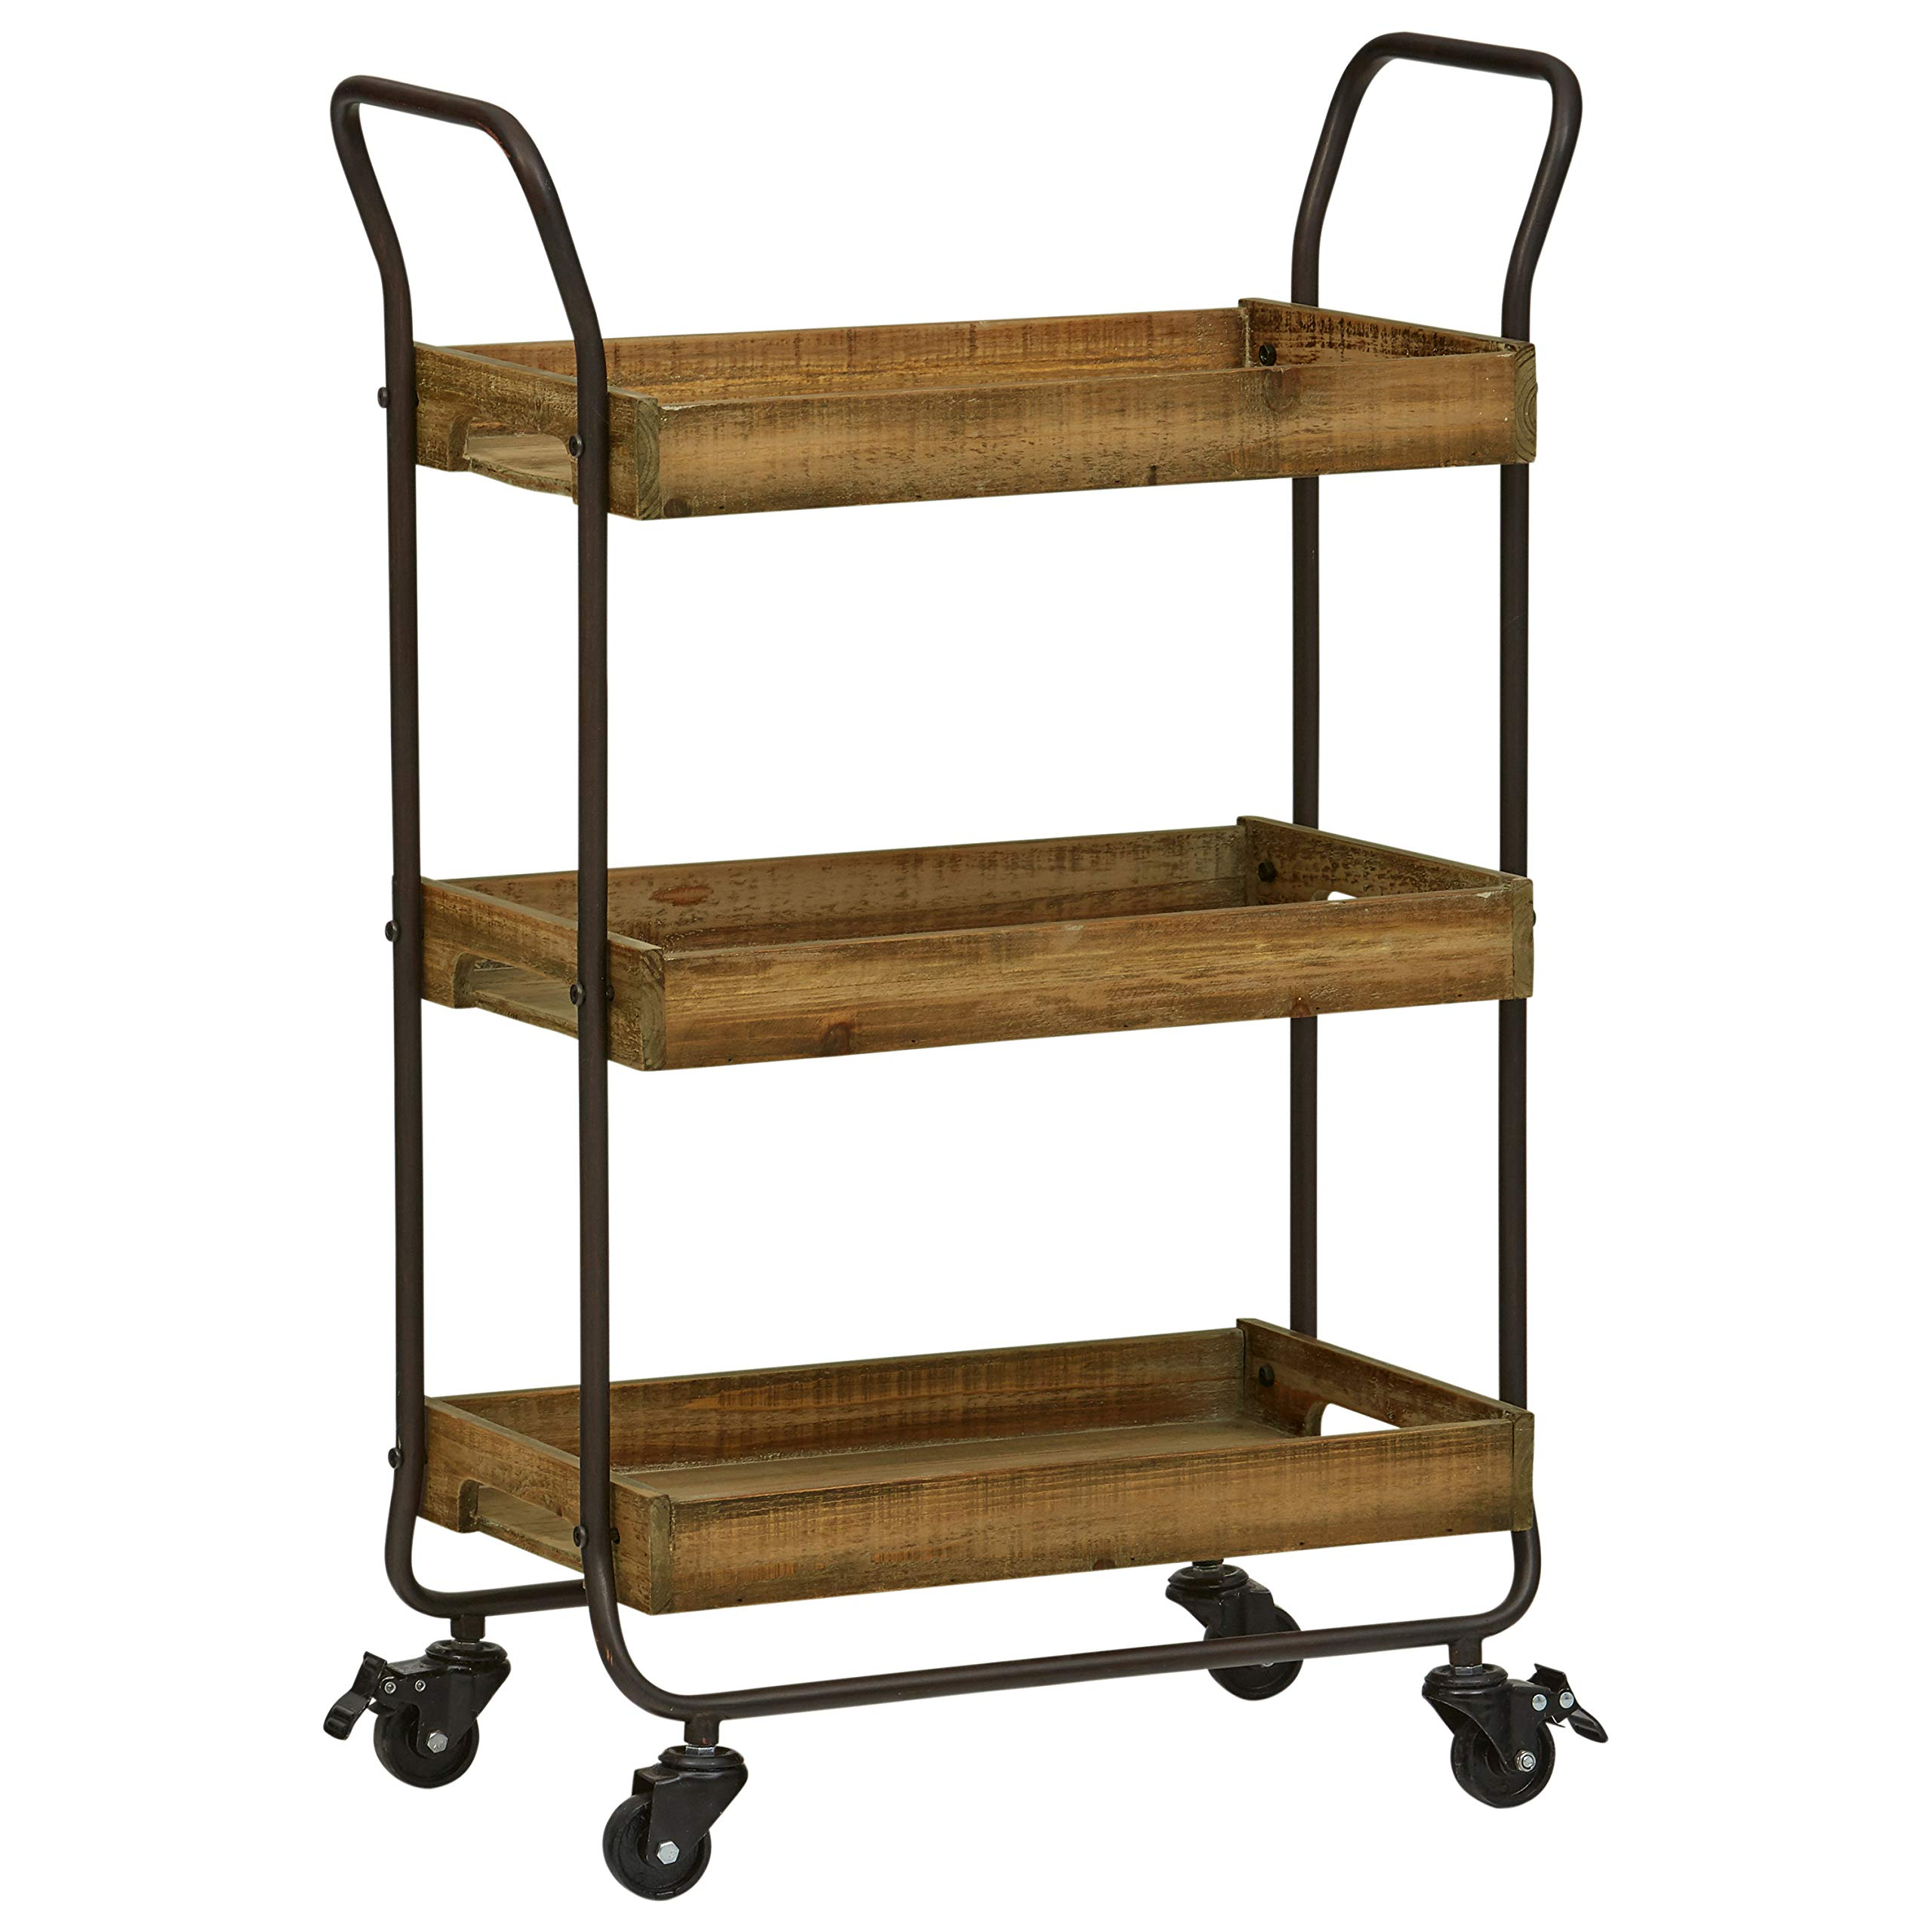 Stone & Beam Contemporary Serving Cart 73.03''H, Black, Natural